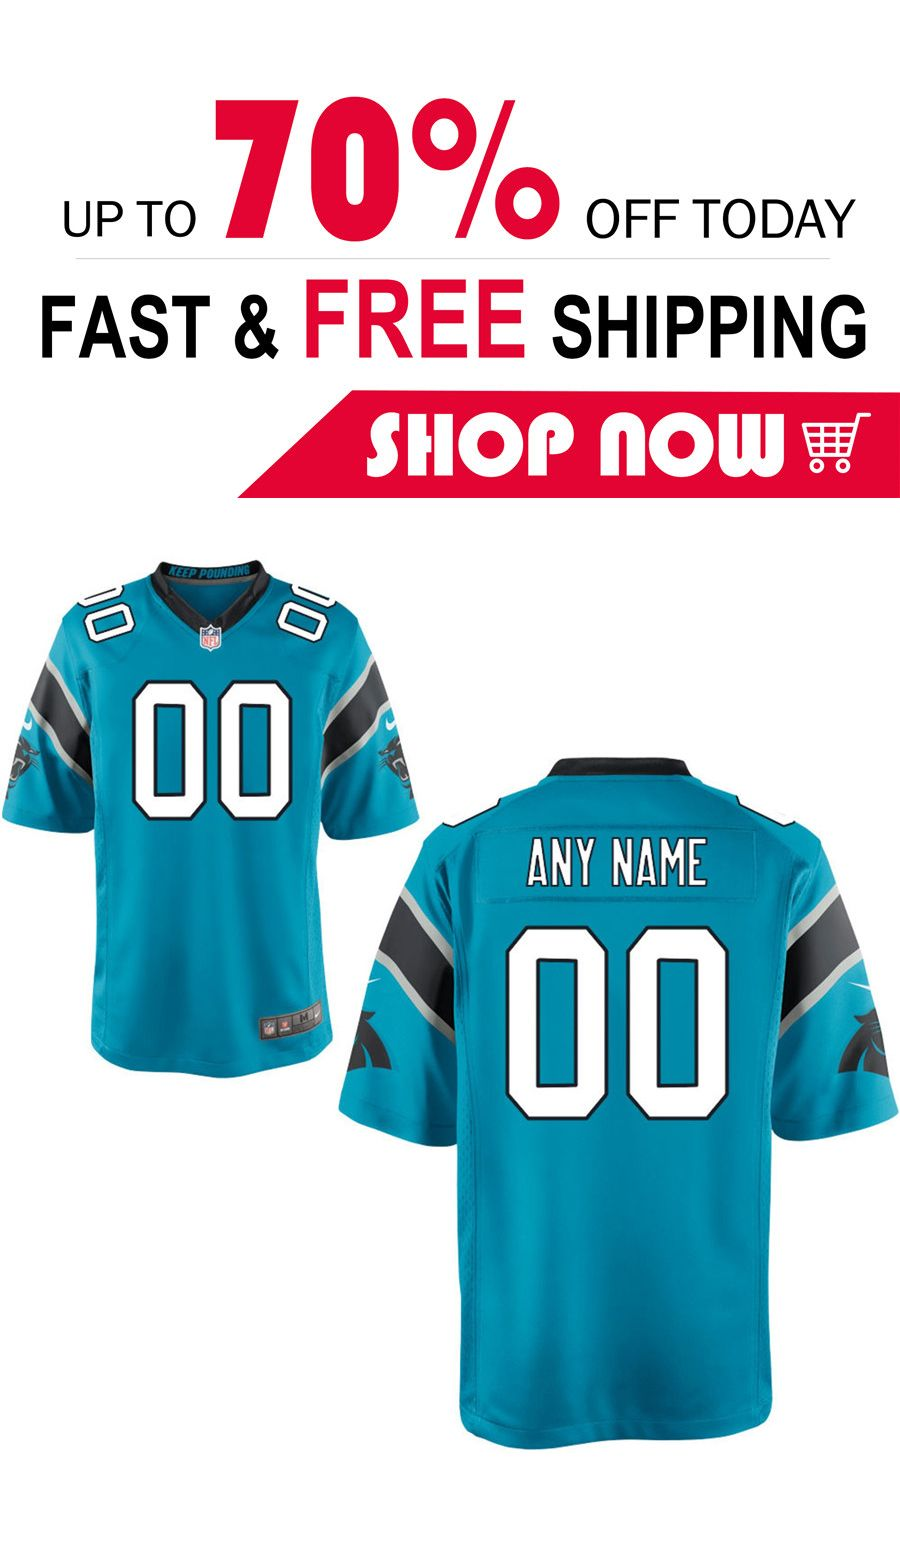 timeless design 1a554 25a92 2019 的 Carolina Panthers football custom Game jersey 主题 ...